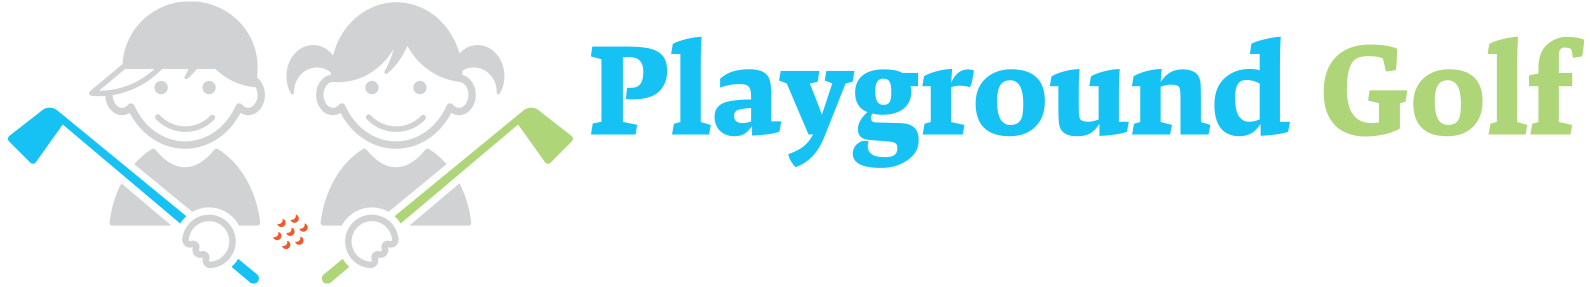 Playground Golf Foundation